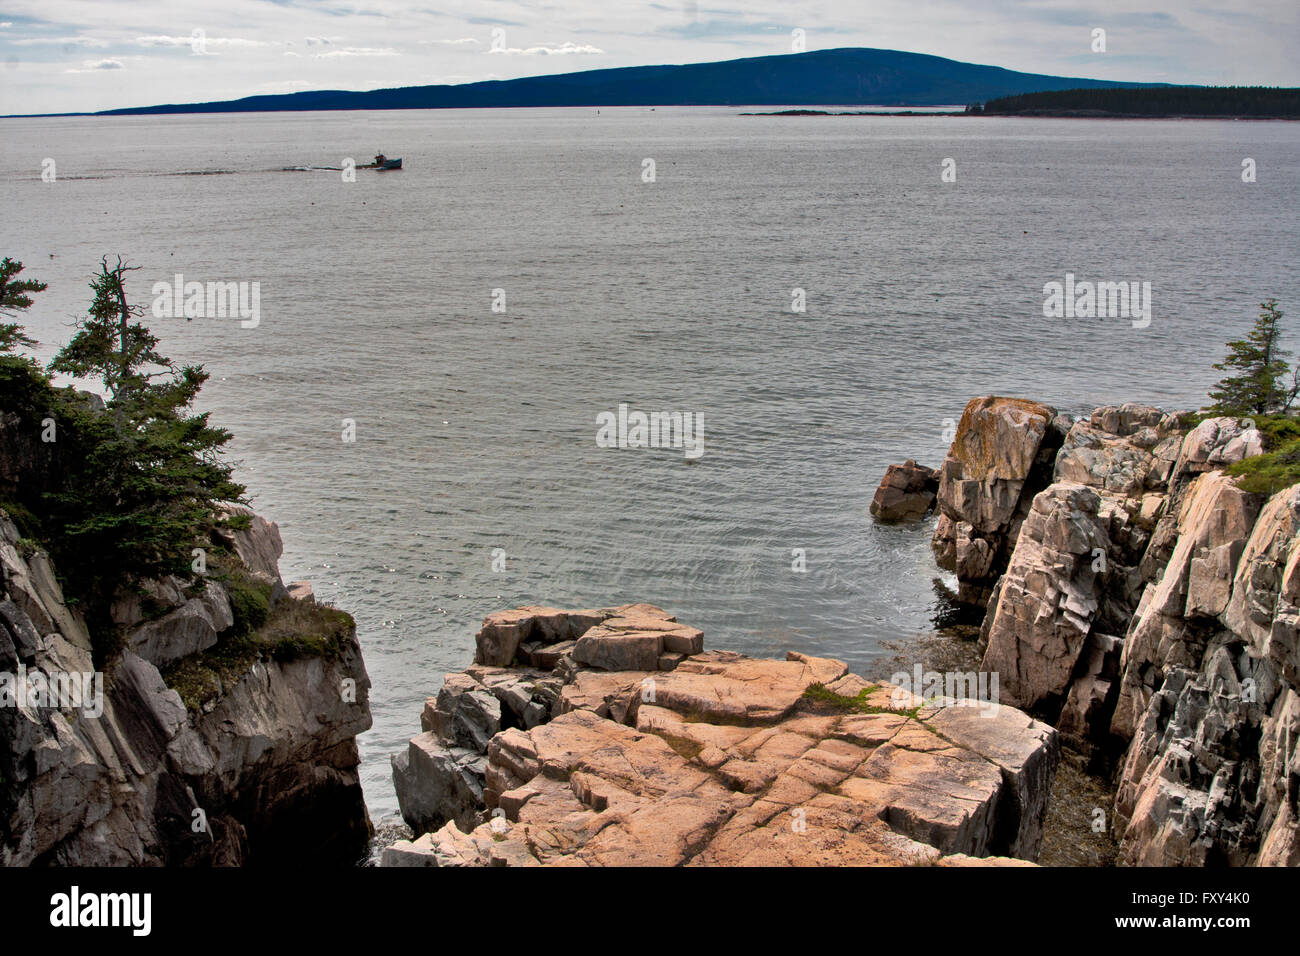 State of Maine, Schoodic Peninsula, Acadia National Park, lobster fisherman heads home on Frenchman Bay, Ravens - Stock Image